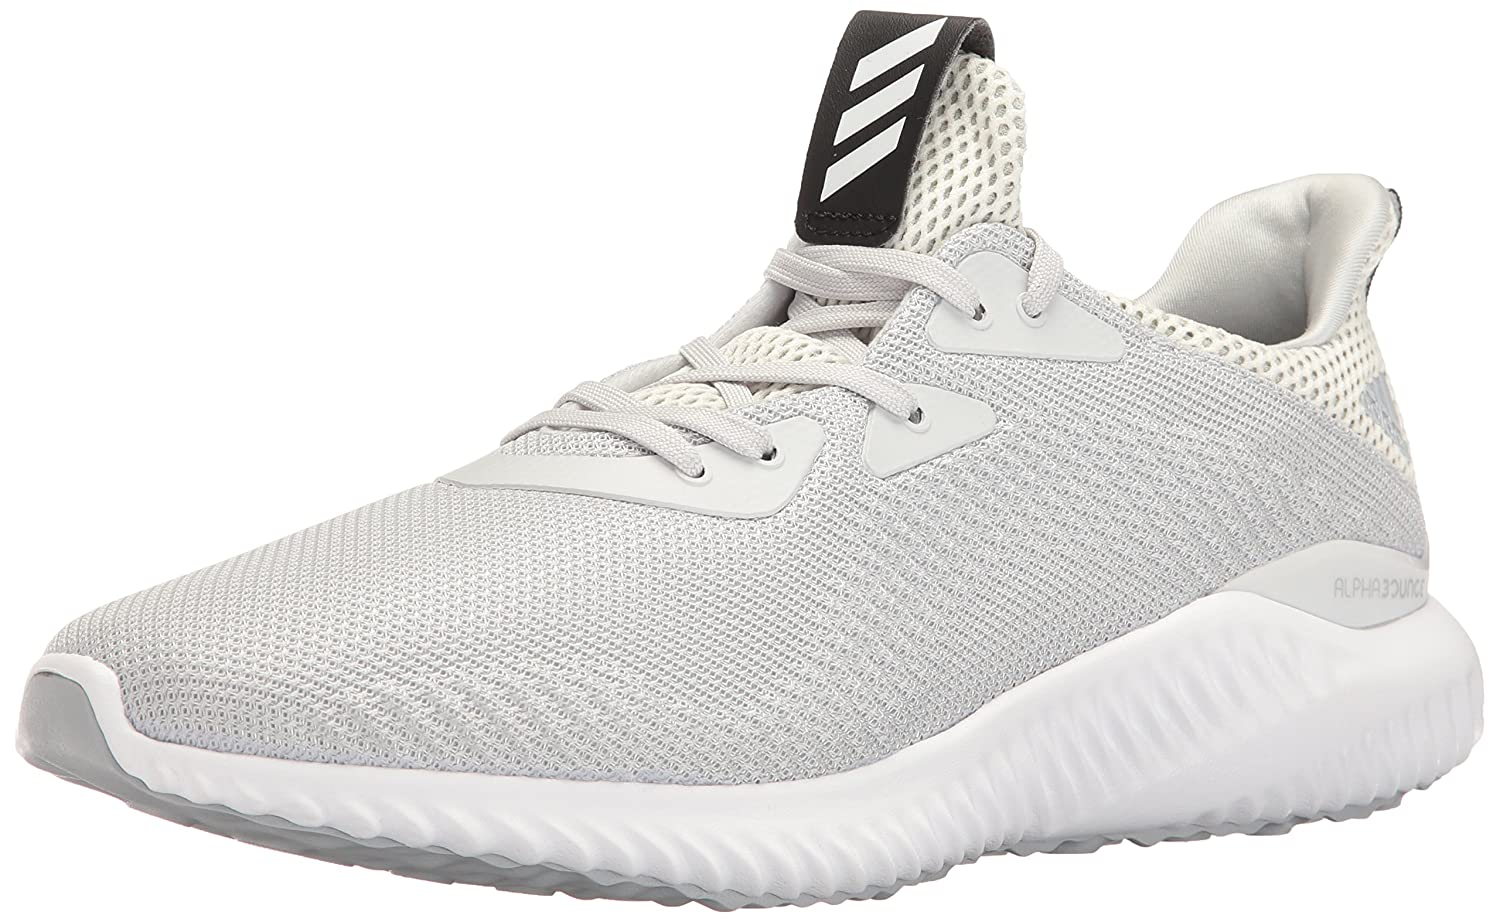 cheap for discount d8bd9 0d992 Amazon.com  adidas Performance Mens Alphabounce M Running Shoe  Road  Running